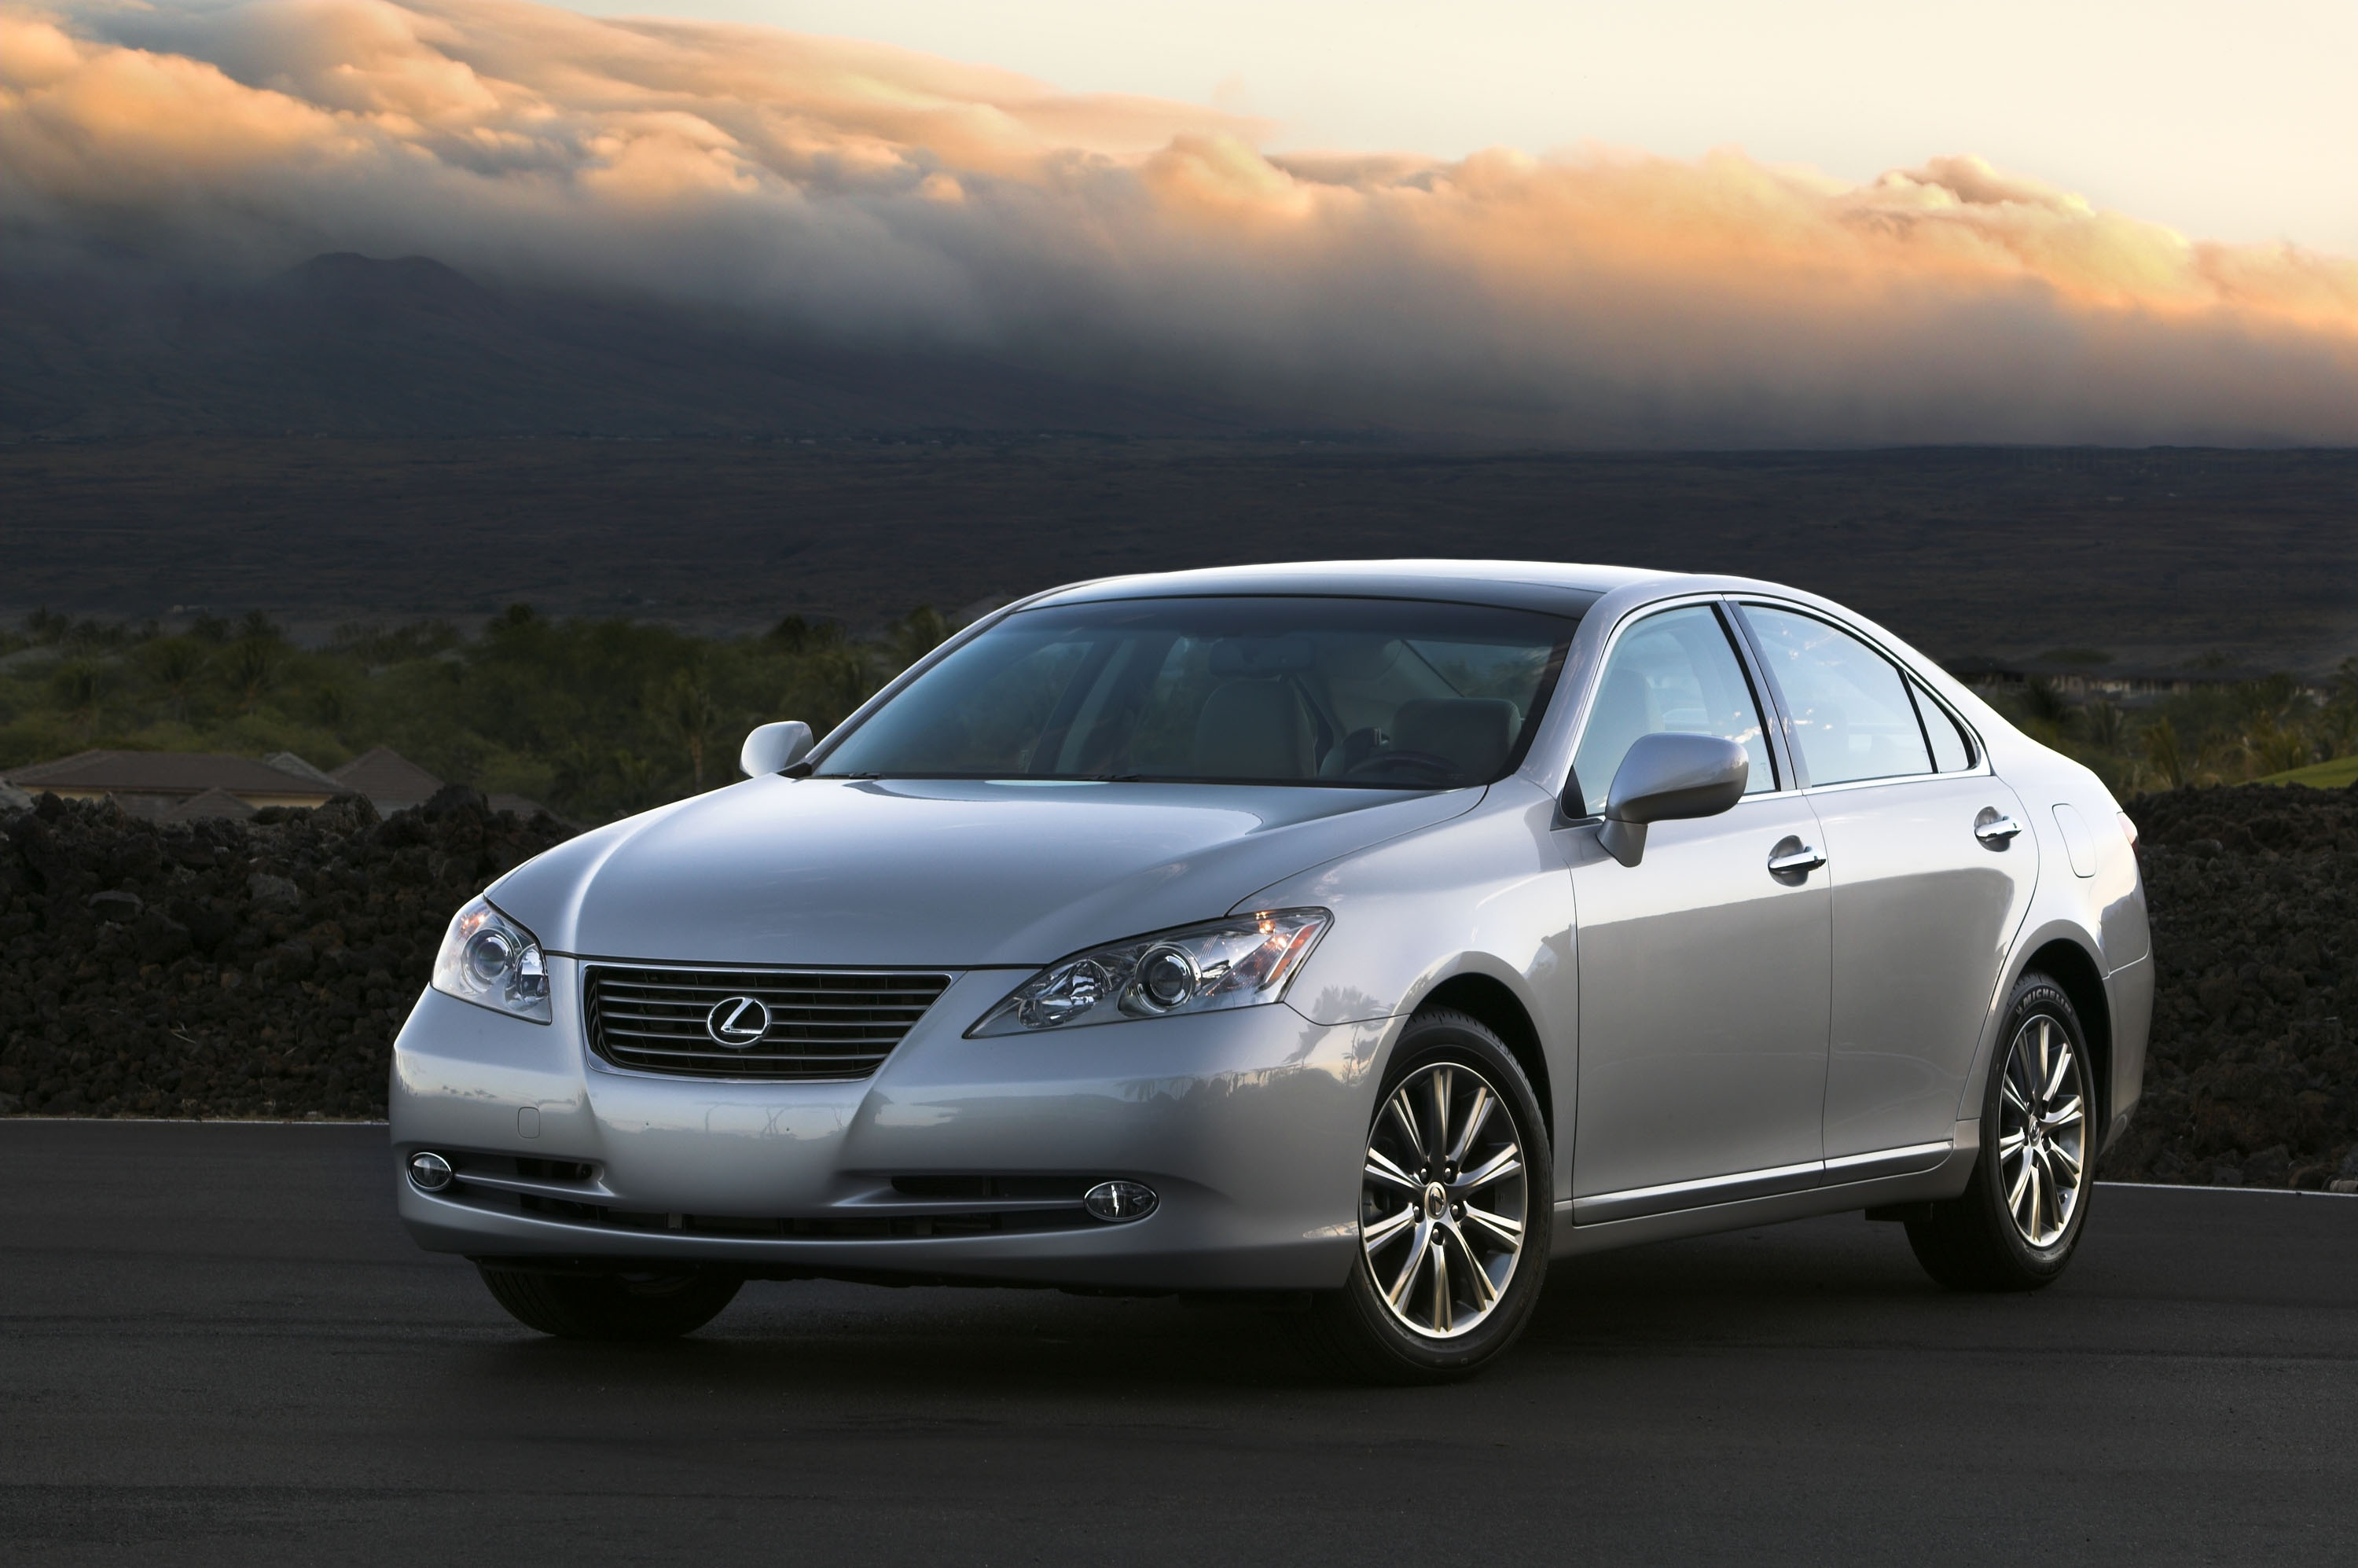 Cheap Cars For Sale >> 2007 Lexus ES350 | Top Speed